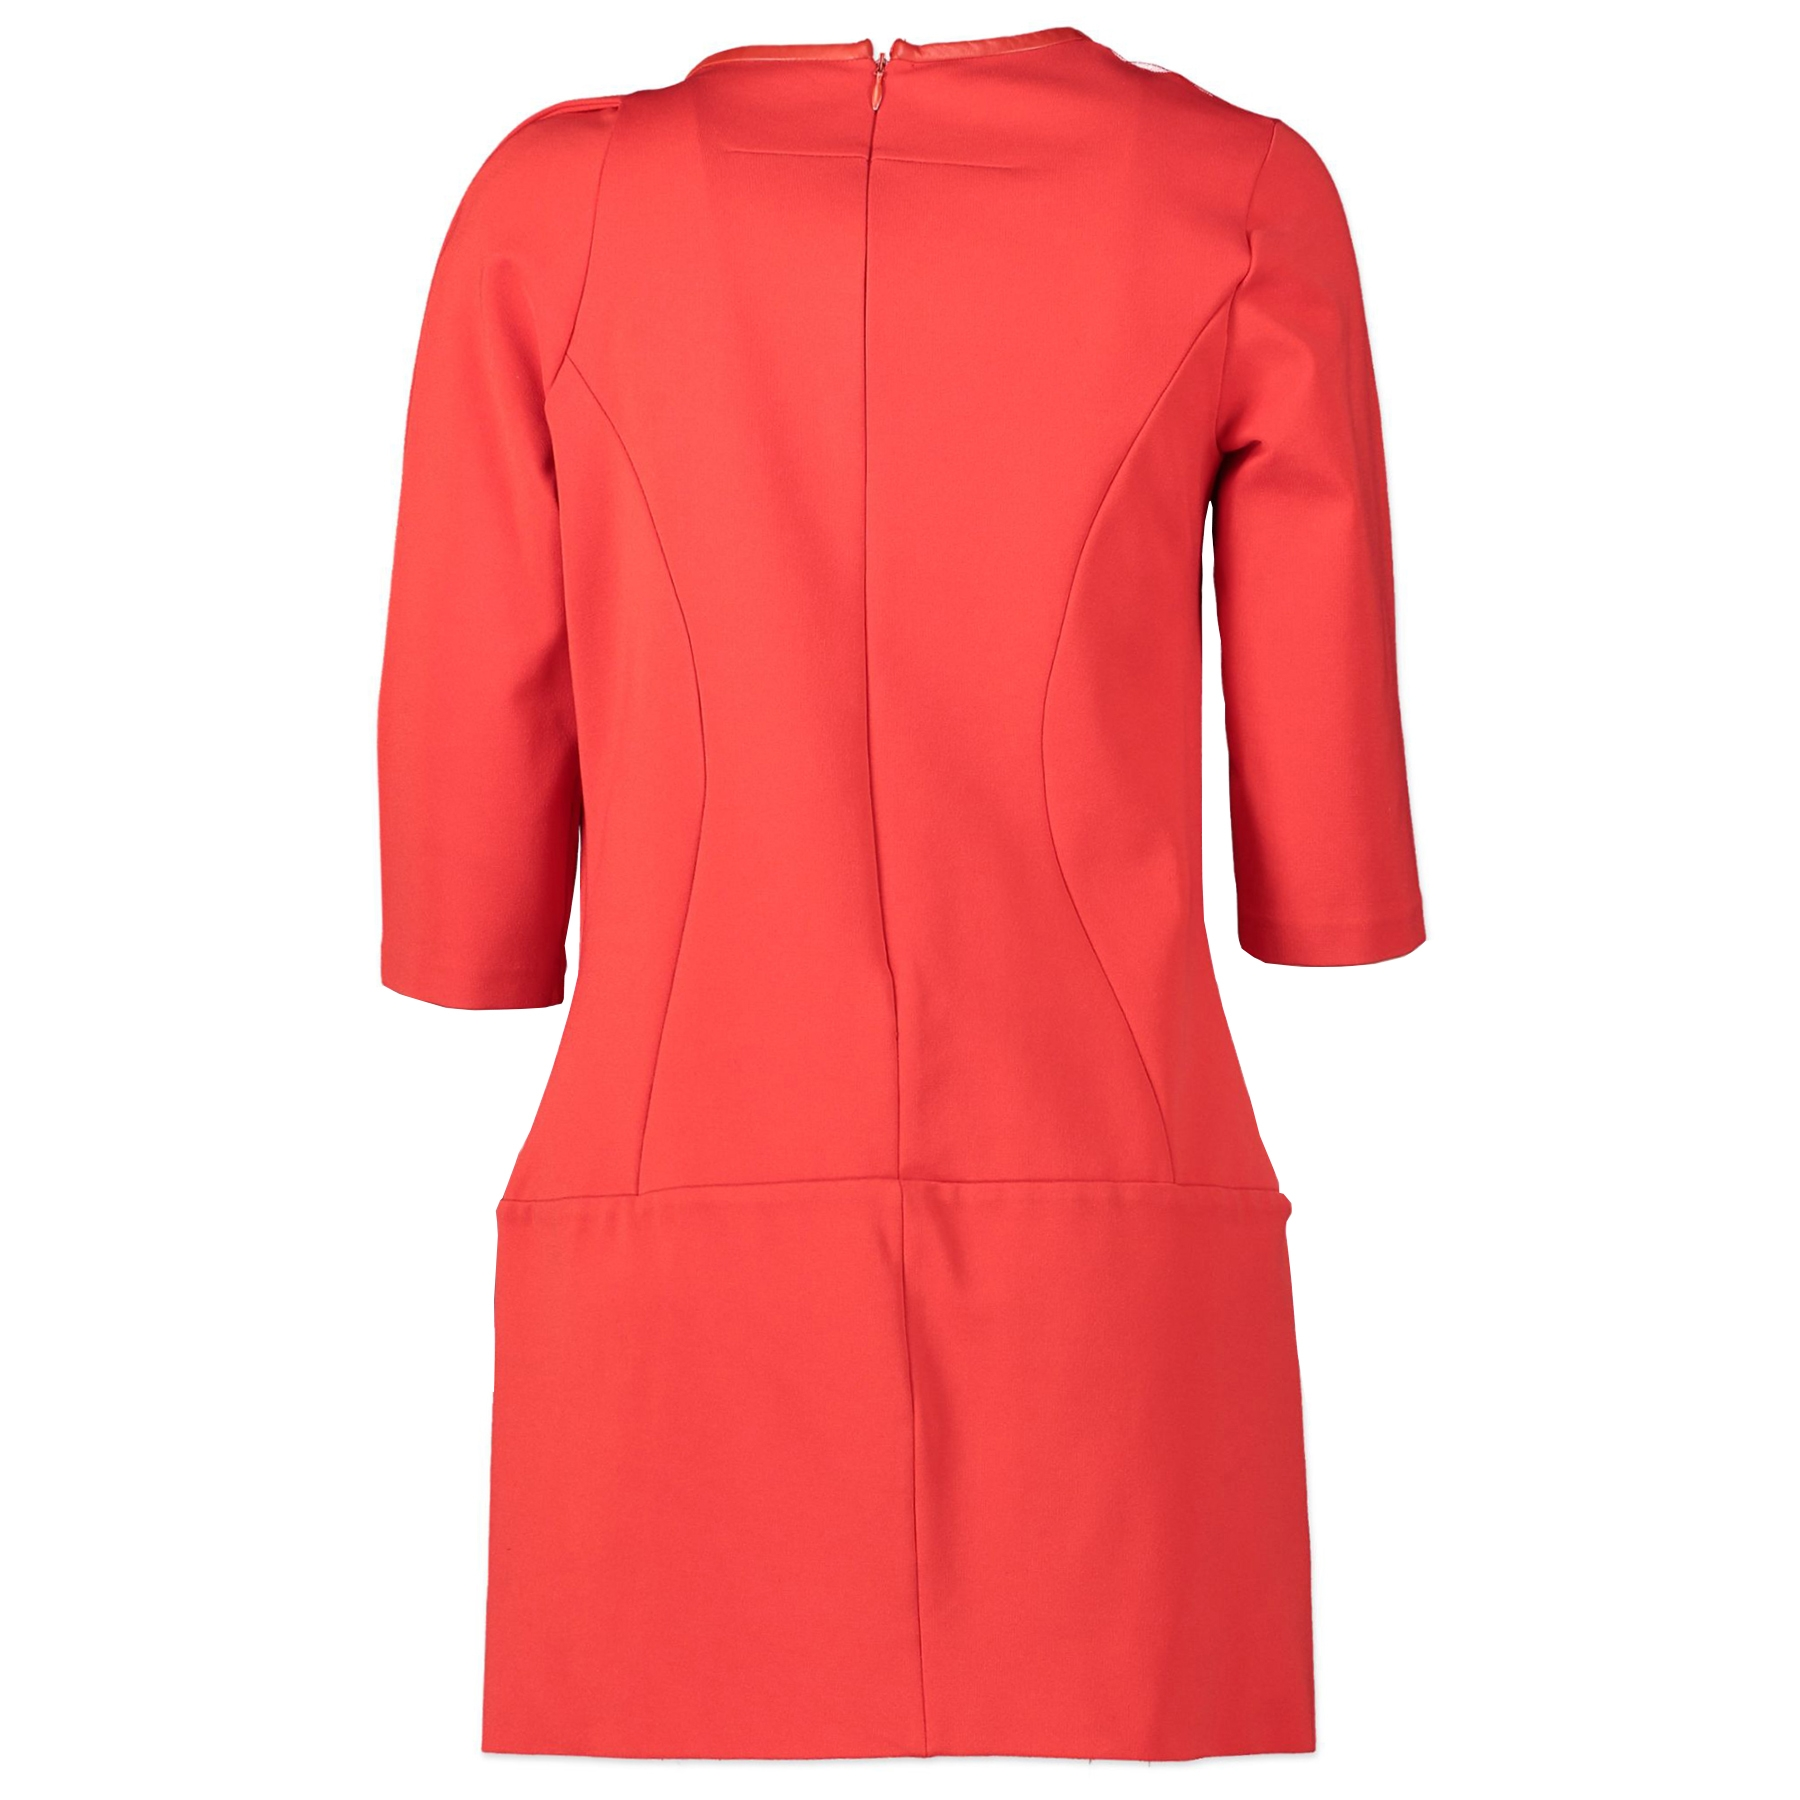 Authentieke tweedehands vintage Givenchy Red Bodycon Dress - Size L koop online webshop LabelLOV